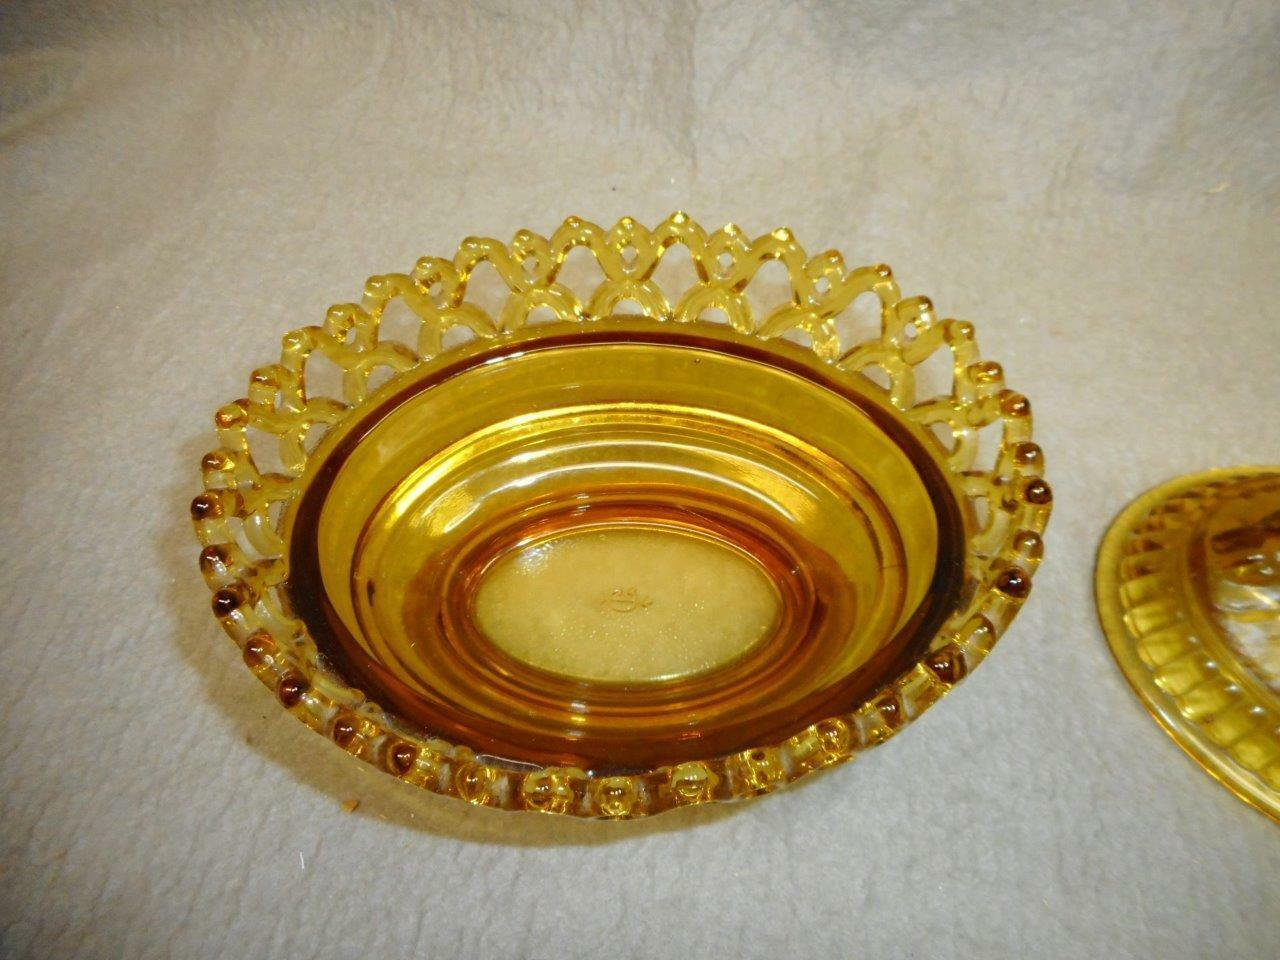 VINTAGE AMBER GLASS LION COVER CANDY DISH IMPERIAL GLASS PAT 1889 N/R